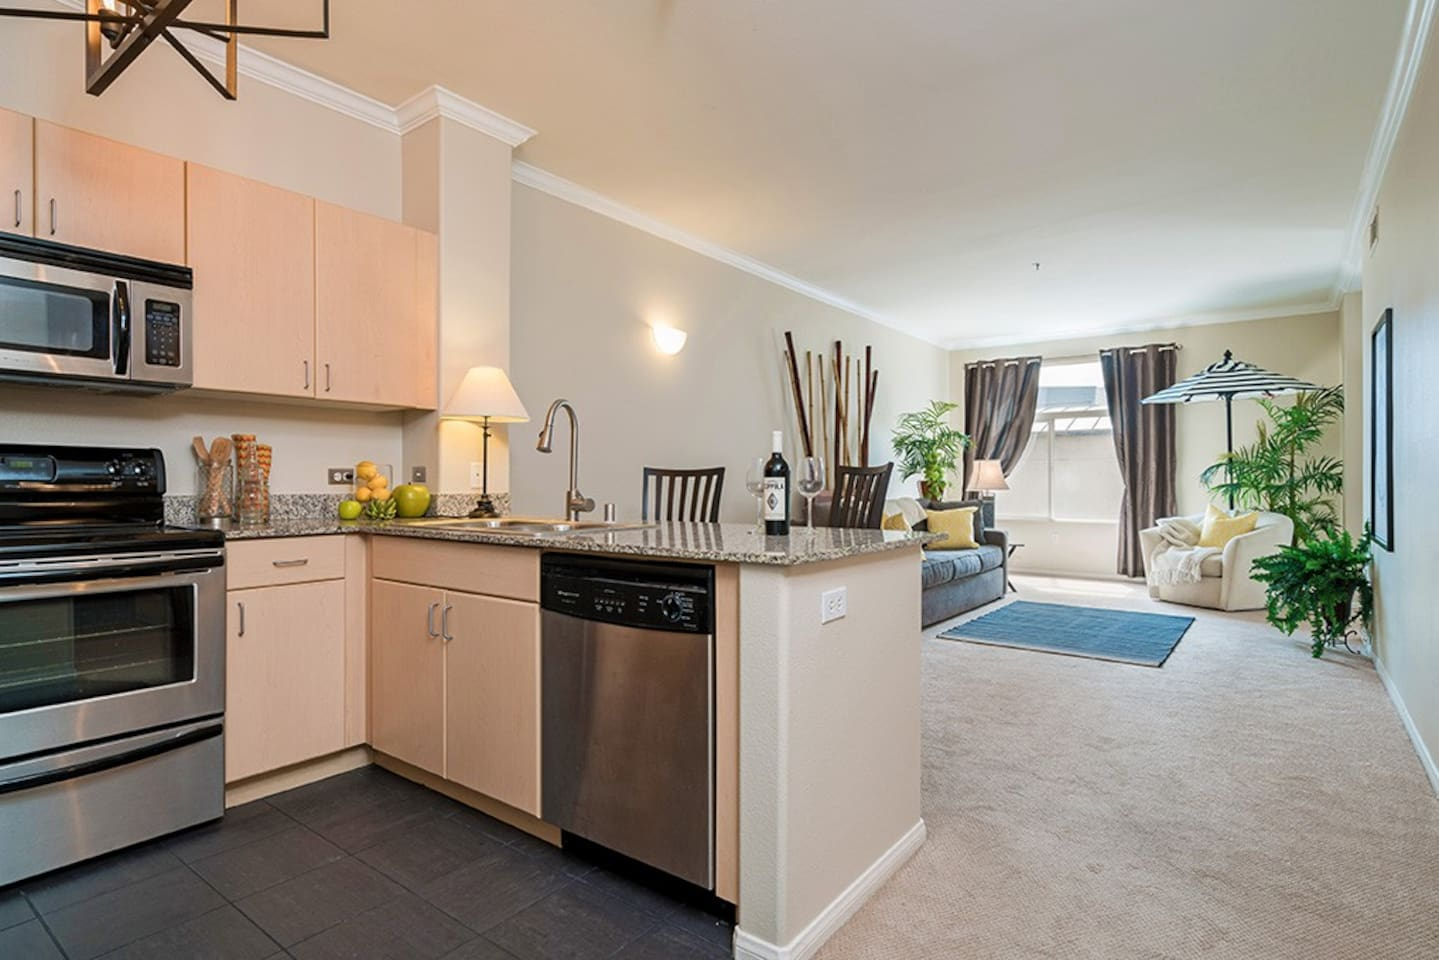 Very spacious and bright this condo offers an open floor plan.